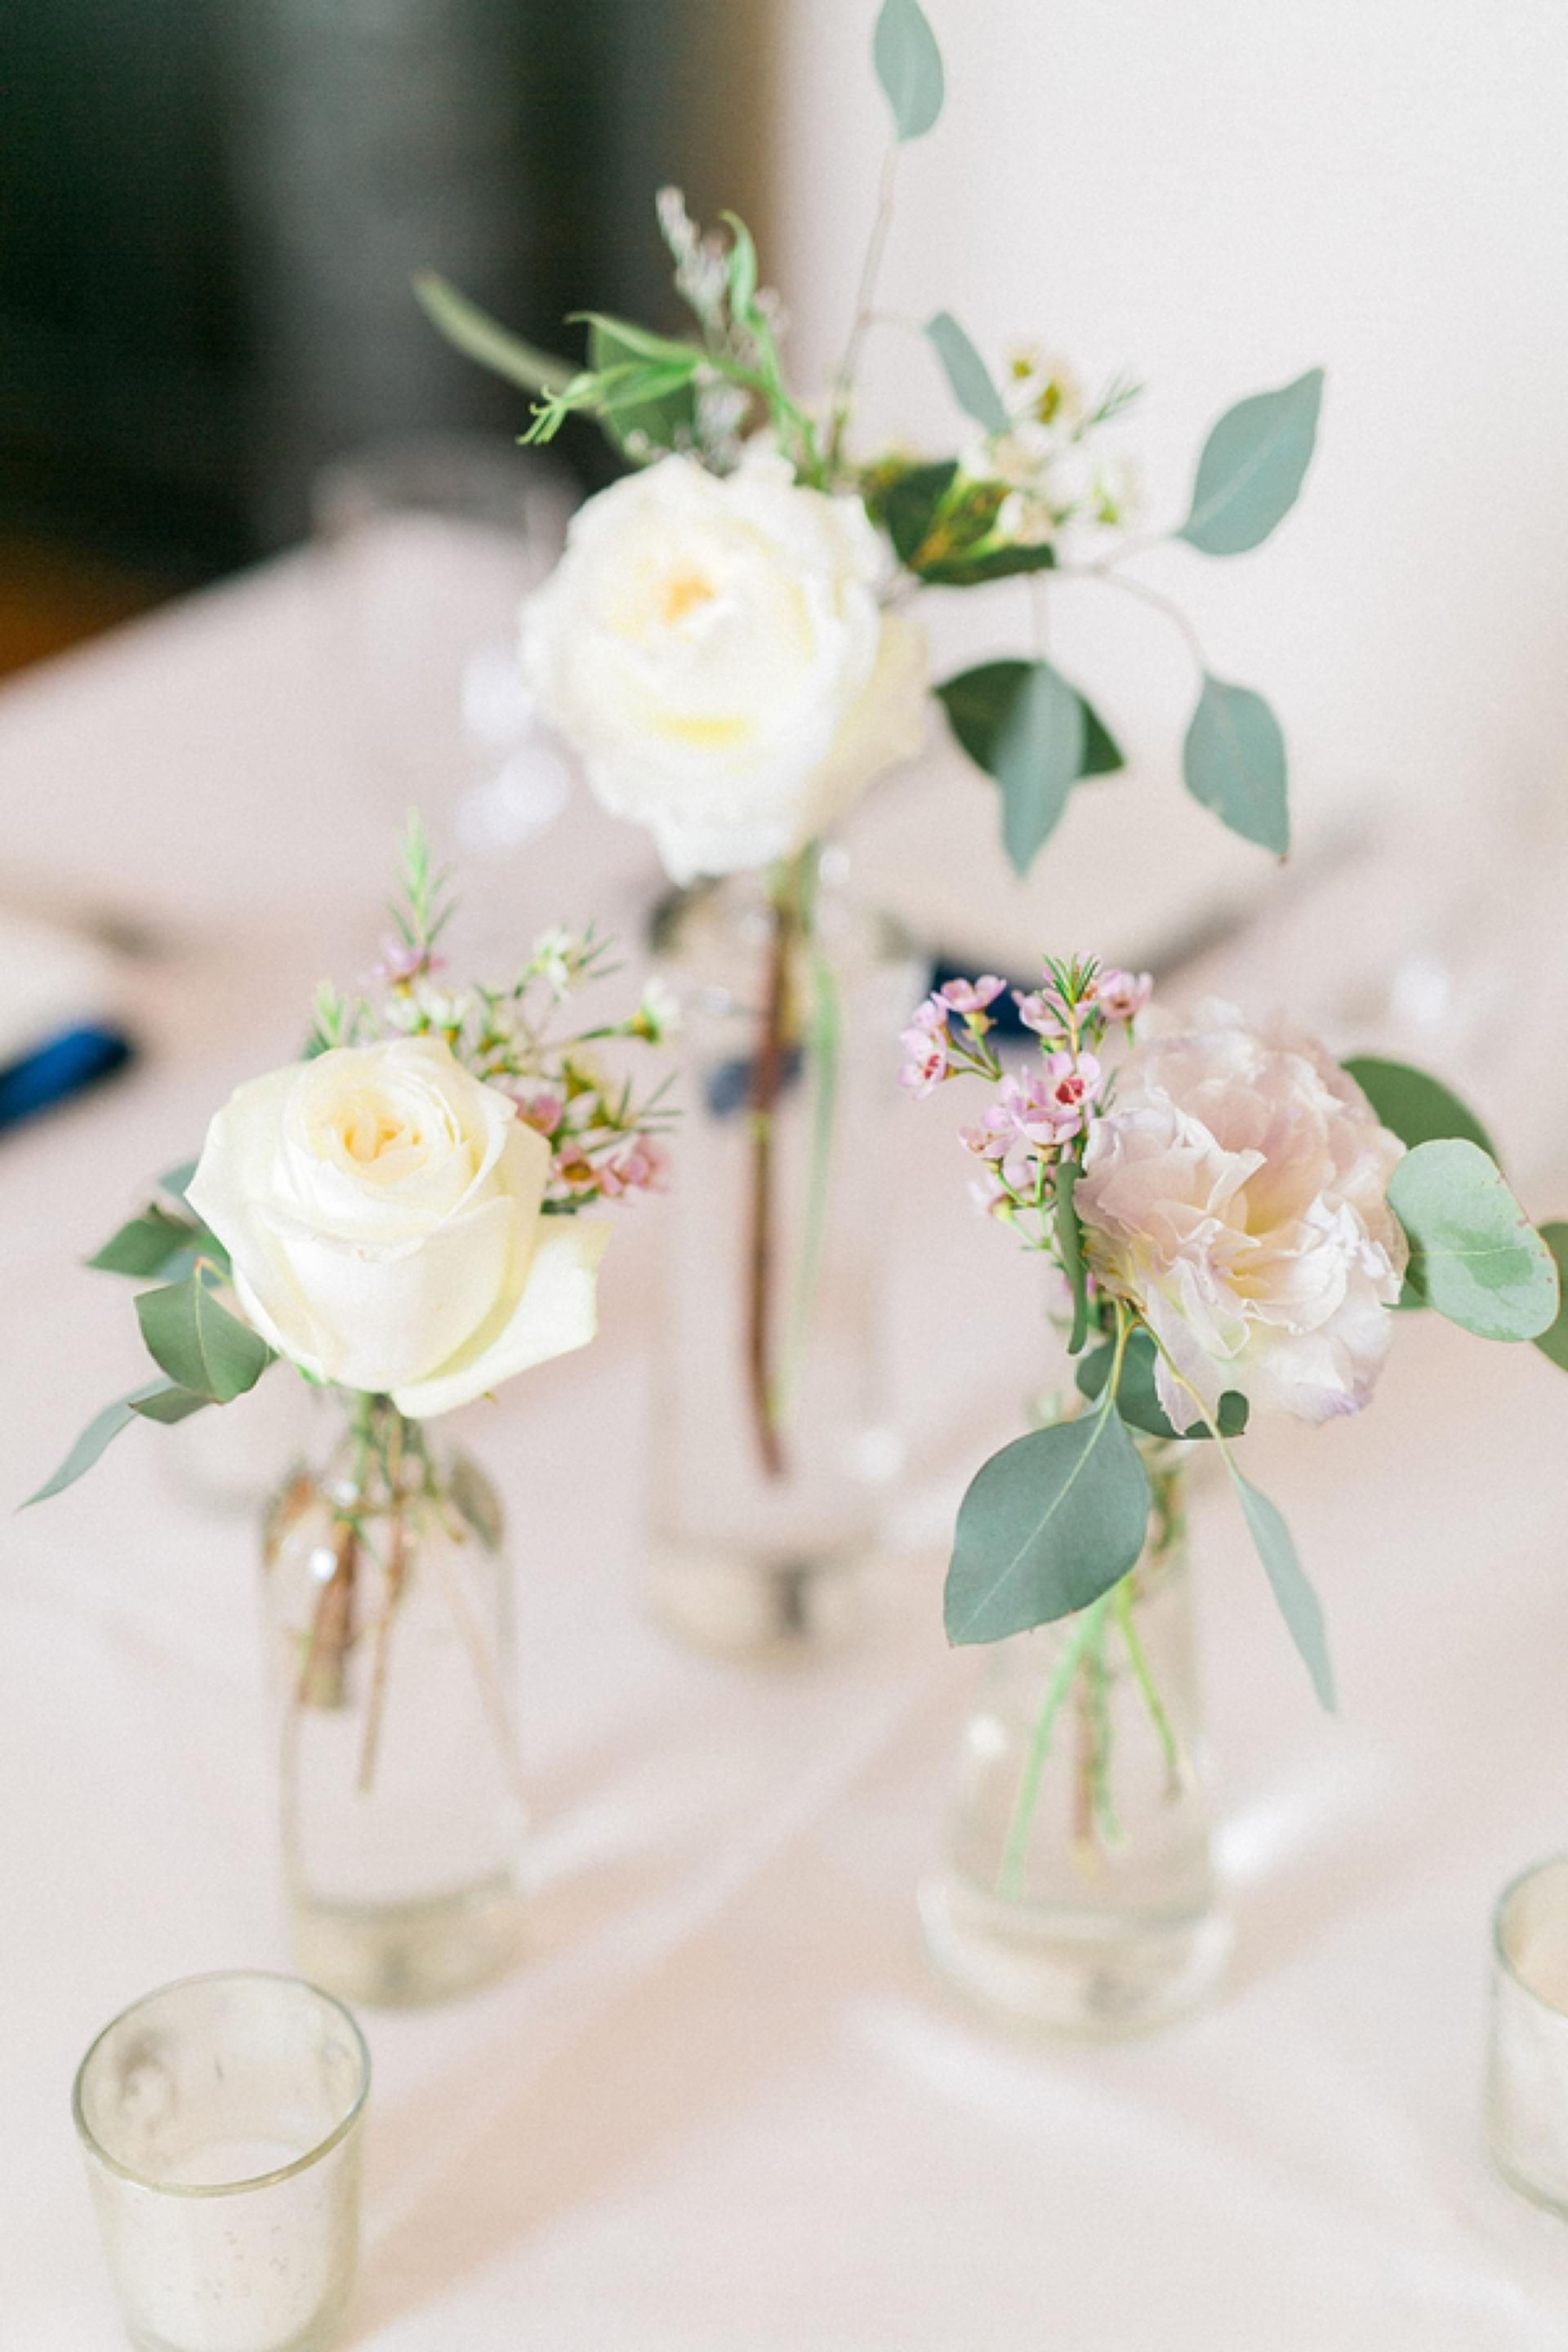 The Smarter Way to Wed | Pinterest | Cream roses, Floral ...